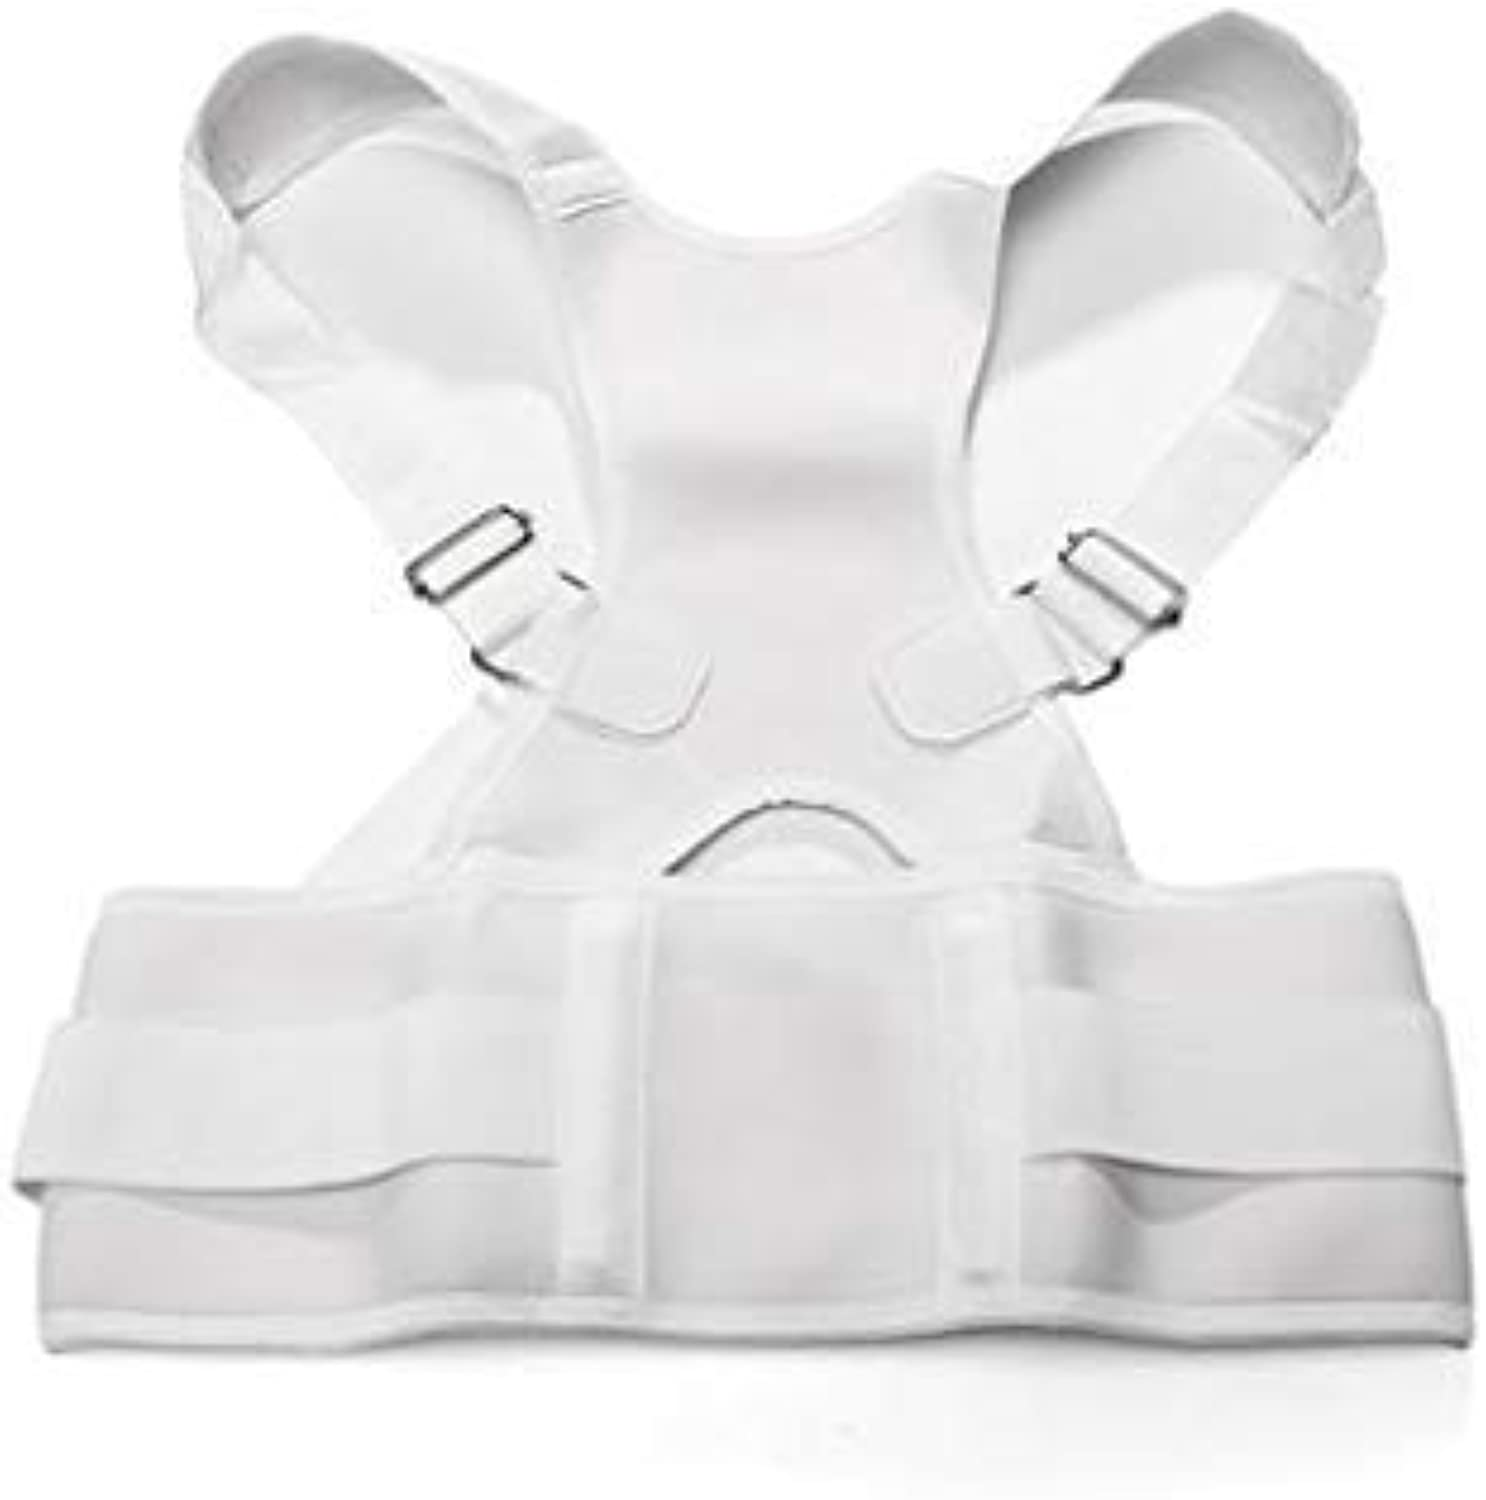 Adjustable Back Support Posture Corrector Brace Should Belt Strap White 2XL